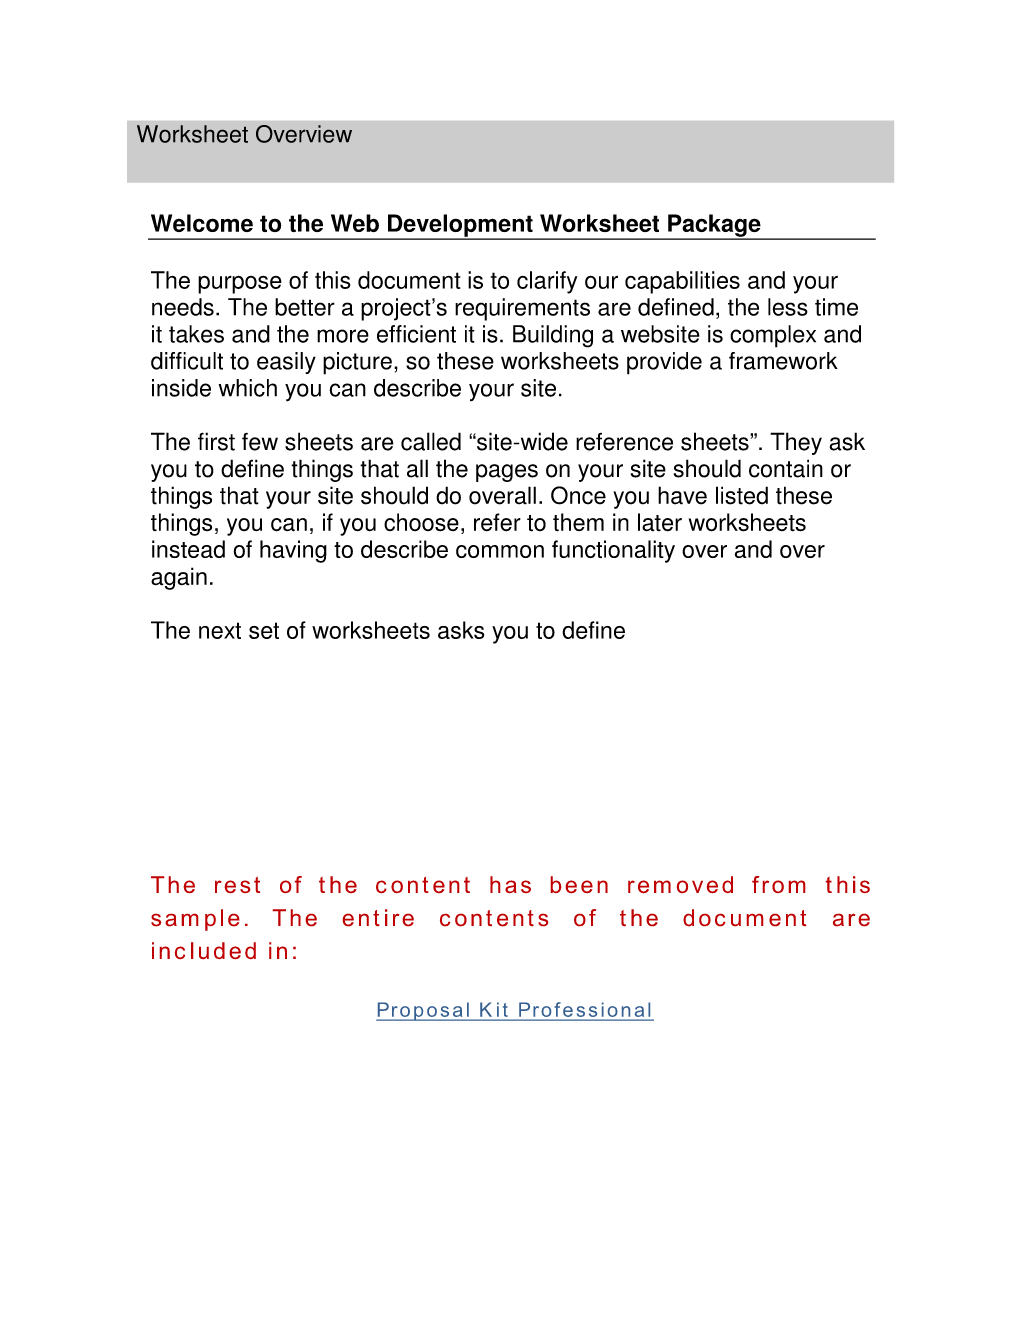 How To Write Your Own Web Development Worksheet Overview